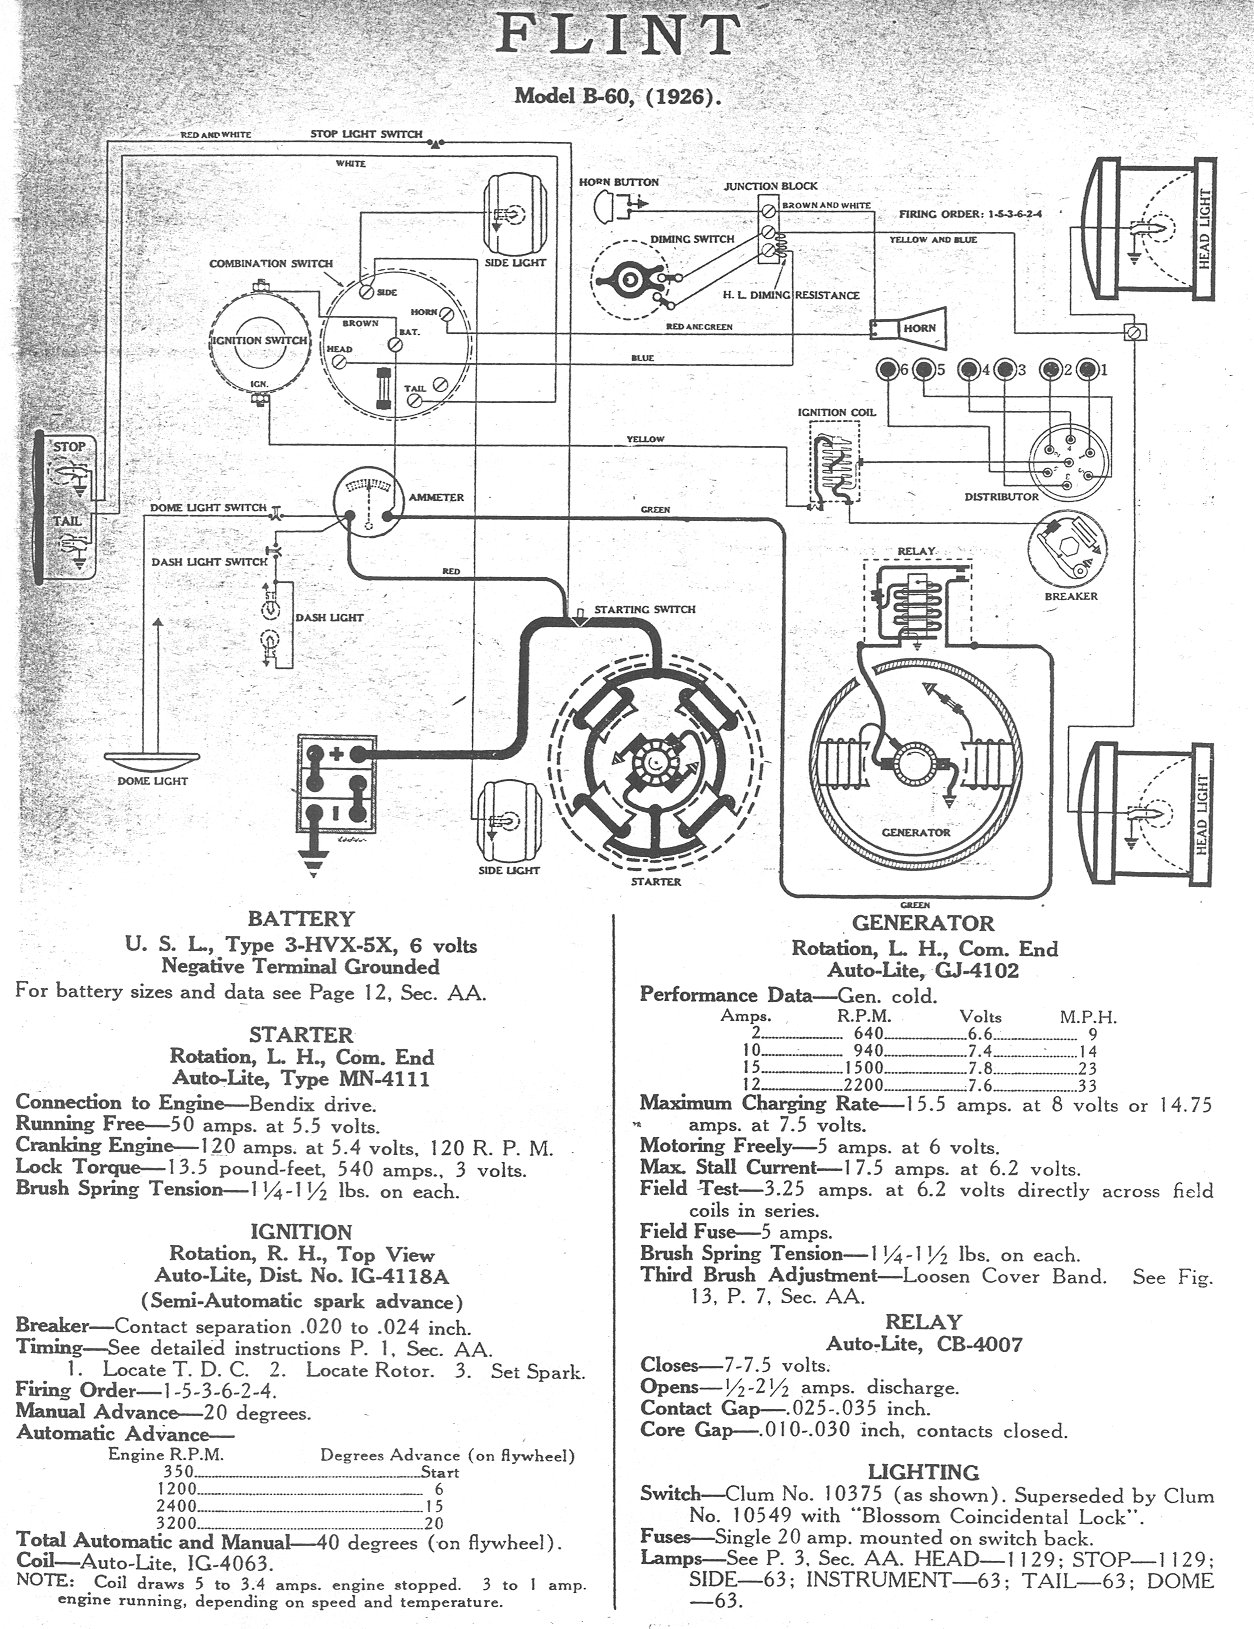 model a ford wiring diagram - roslonek, Wiring diagram